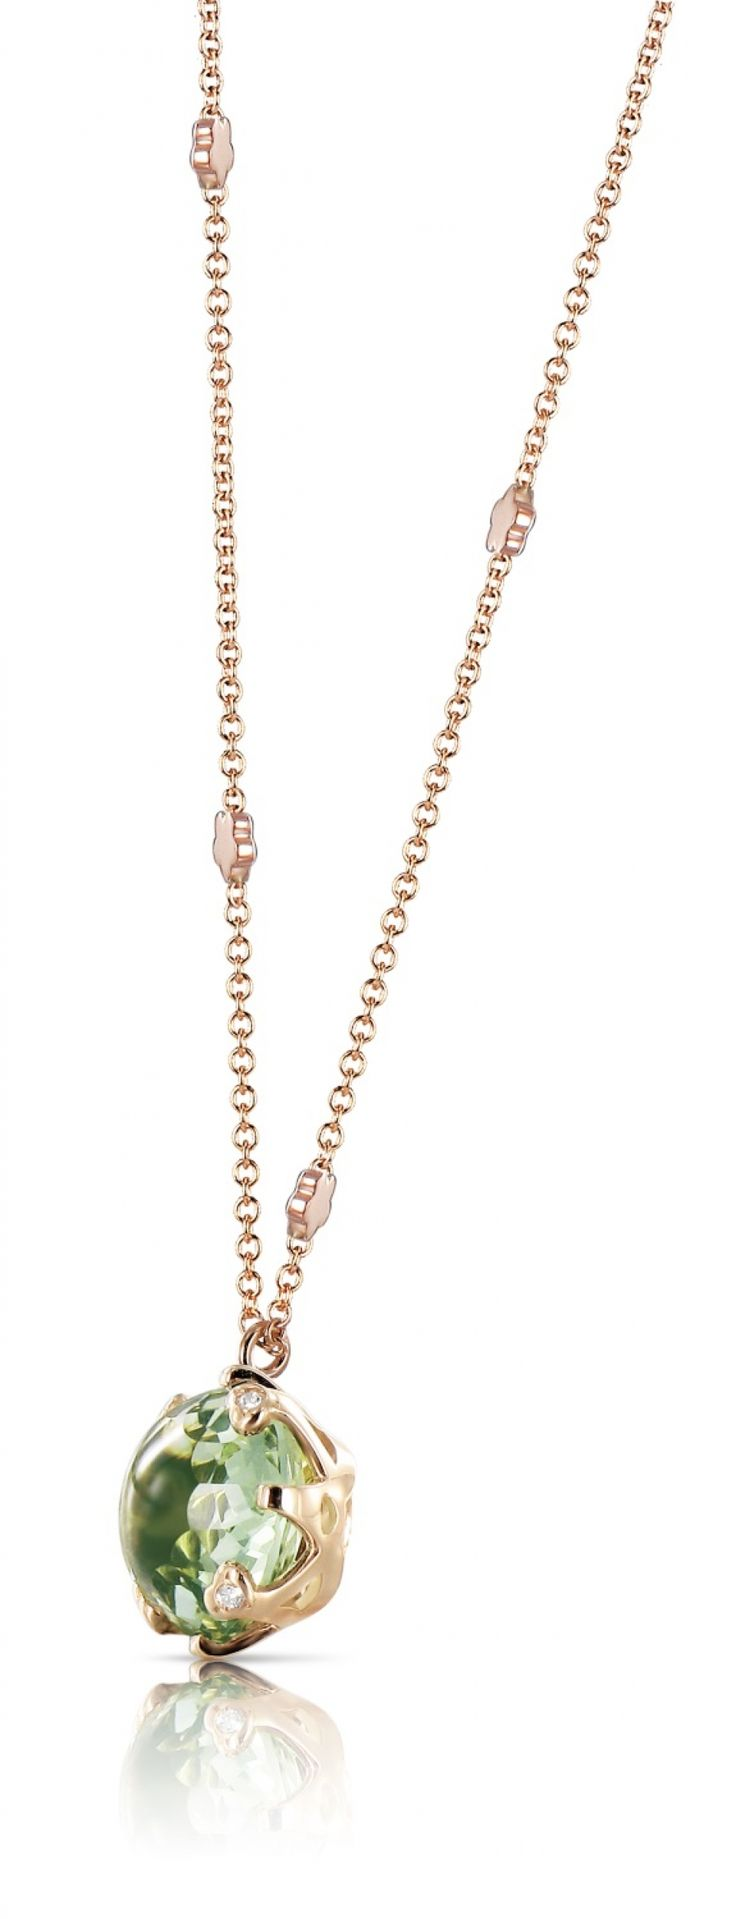 Pasquale Bruni Necklace Sissi collection rose gold with prasiolite and diamonds 14724R - Casa Capone Jewelry